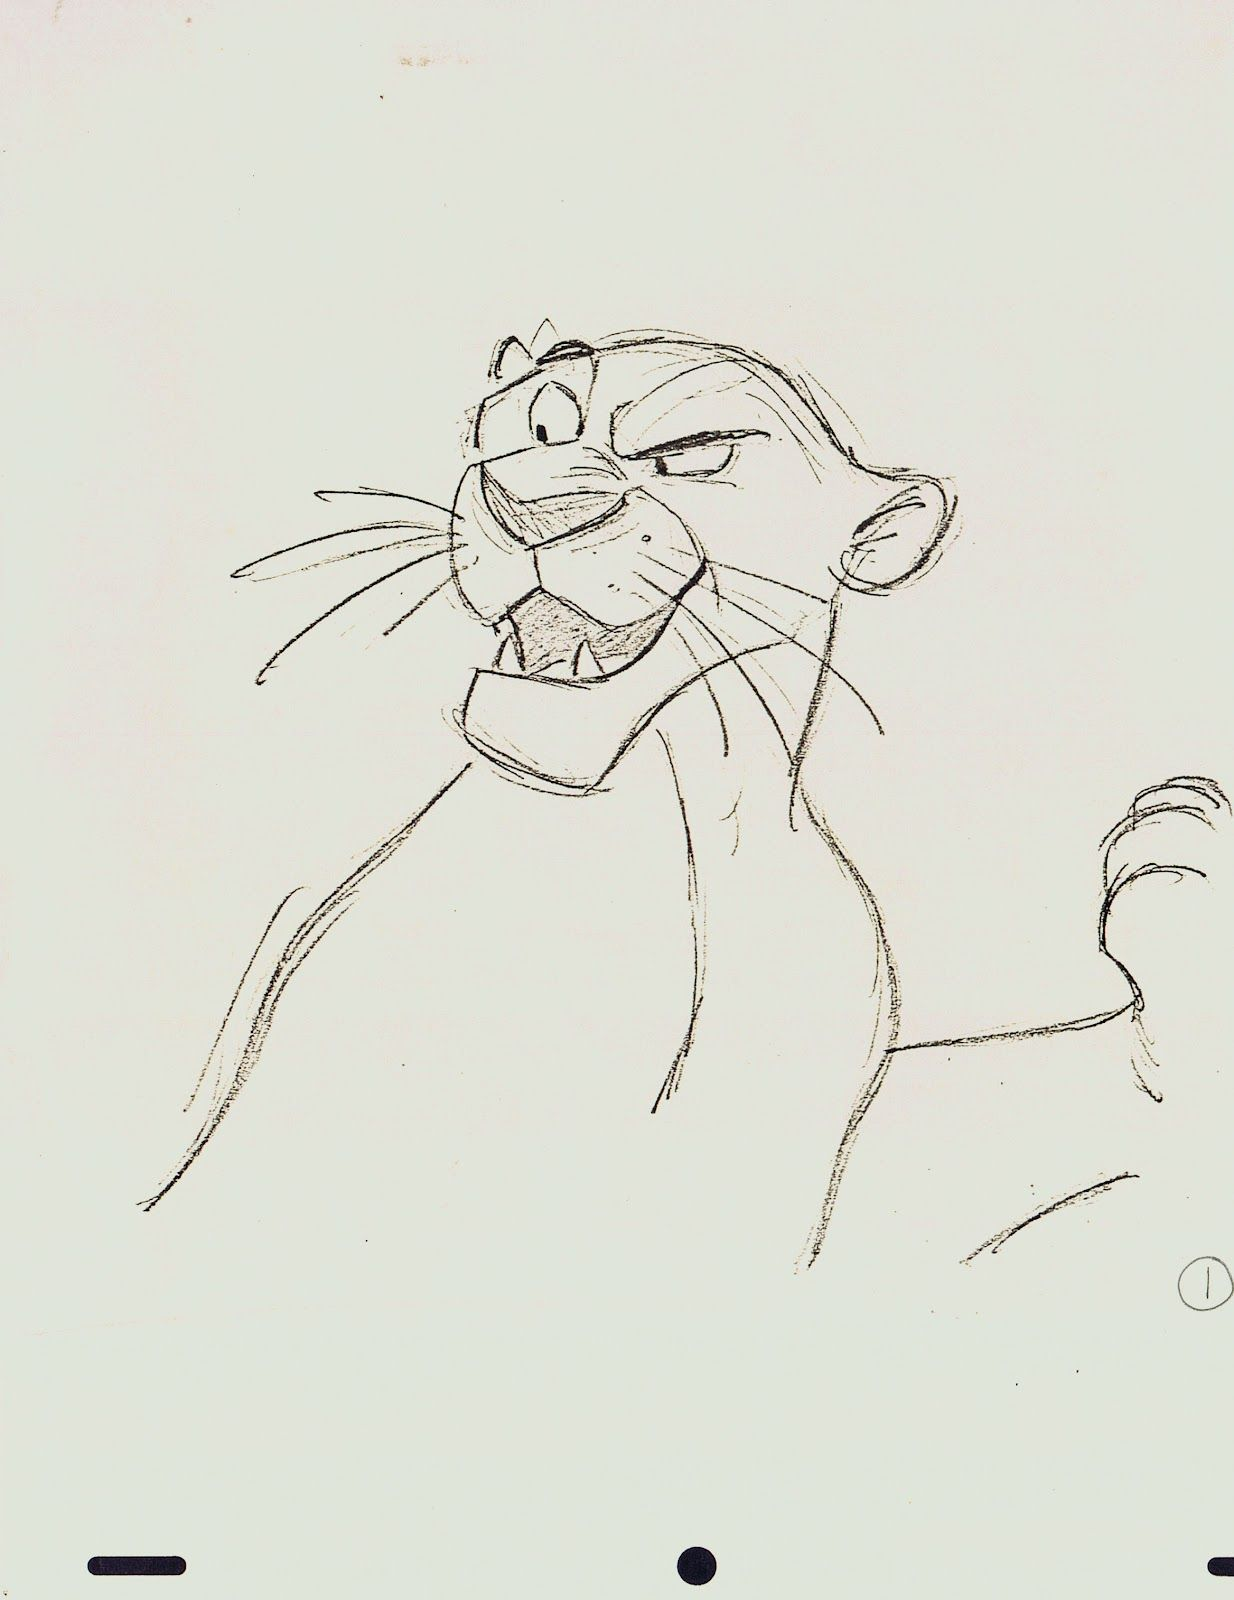 Bagheera jungle book animation sketches by milt kahl